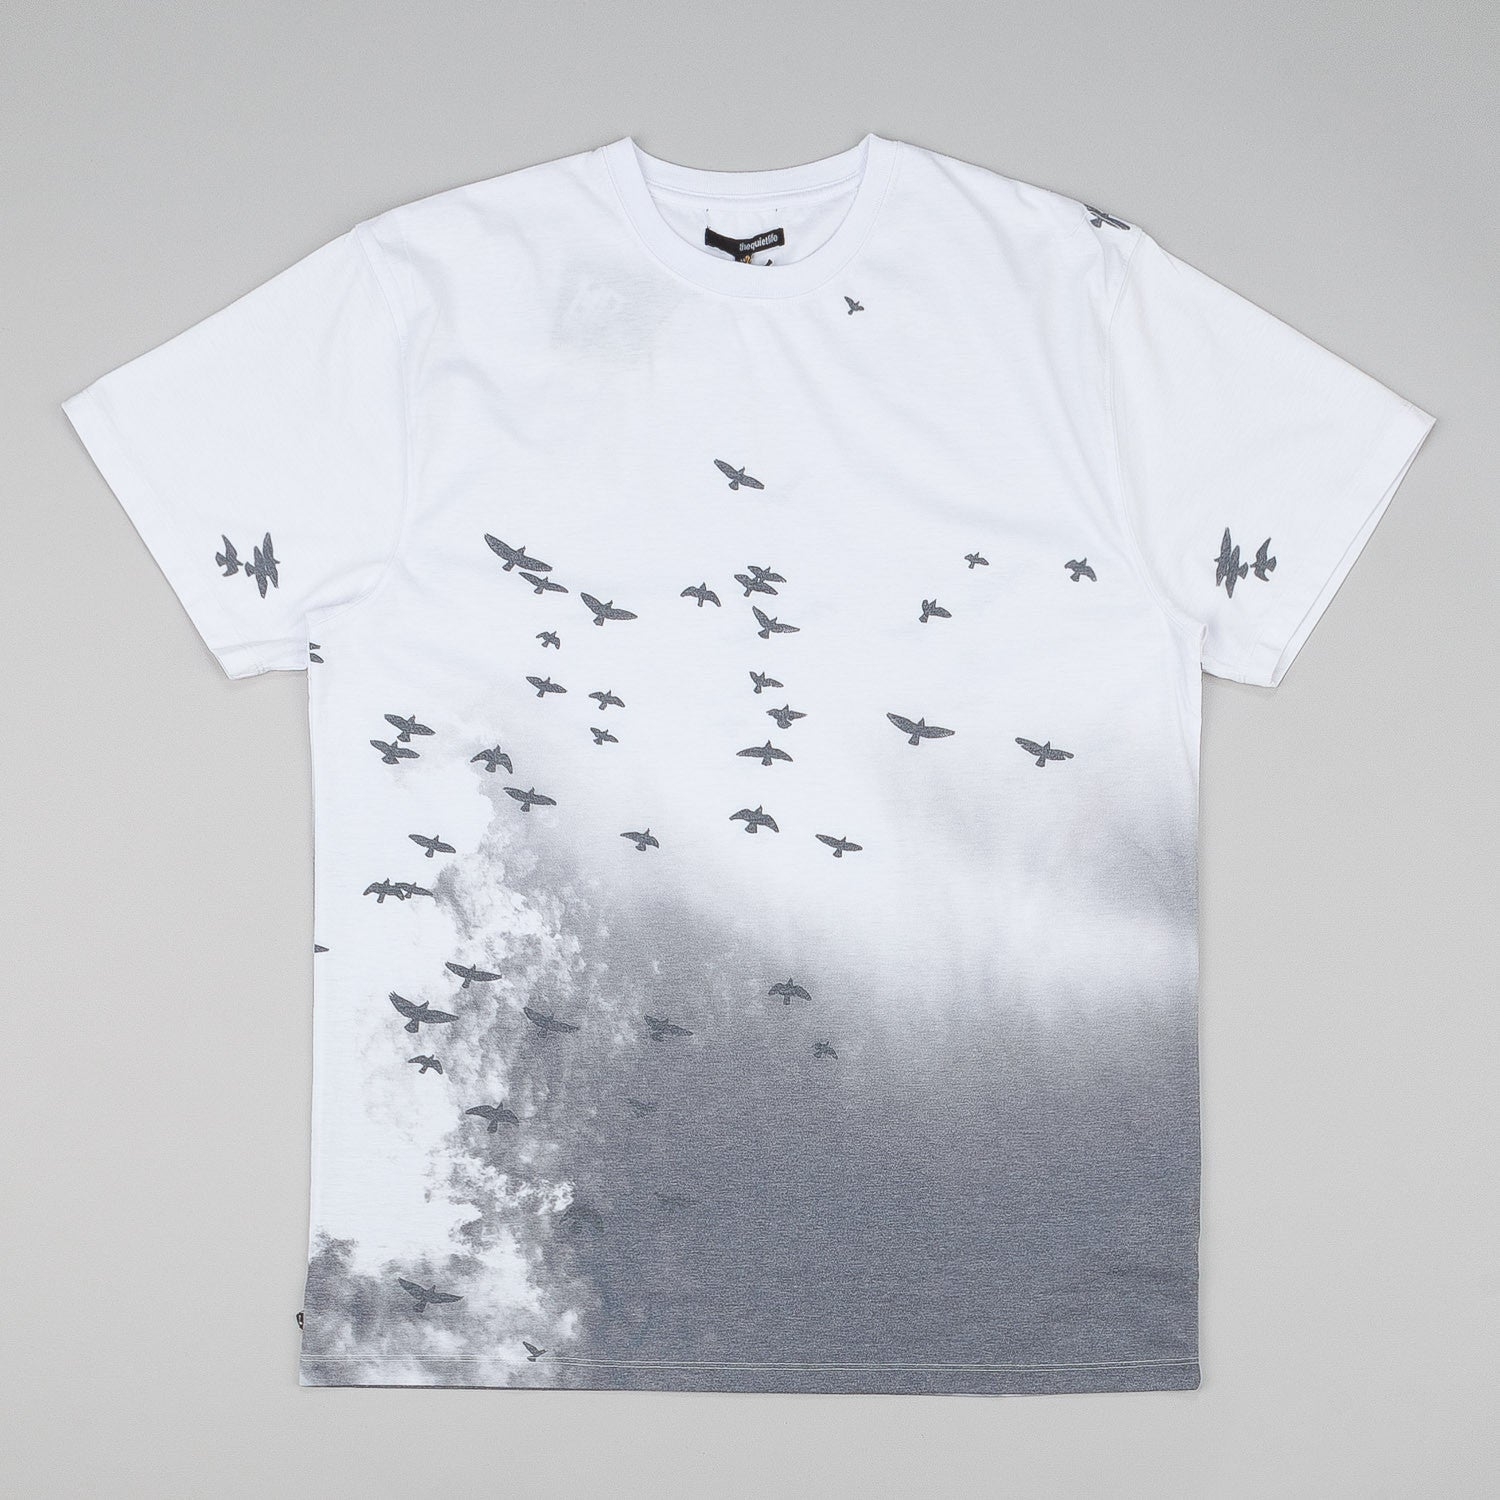 The Quiet Life Birds T-Shirt